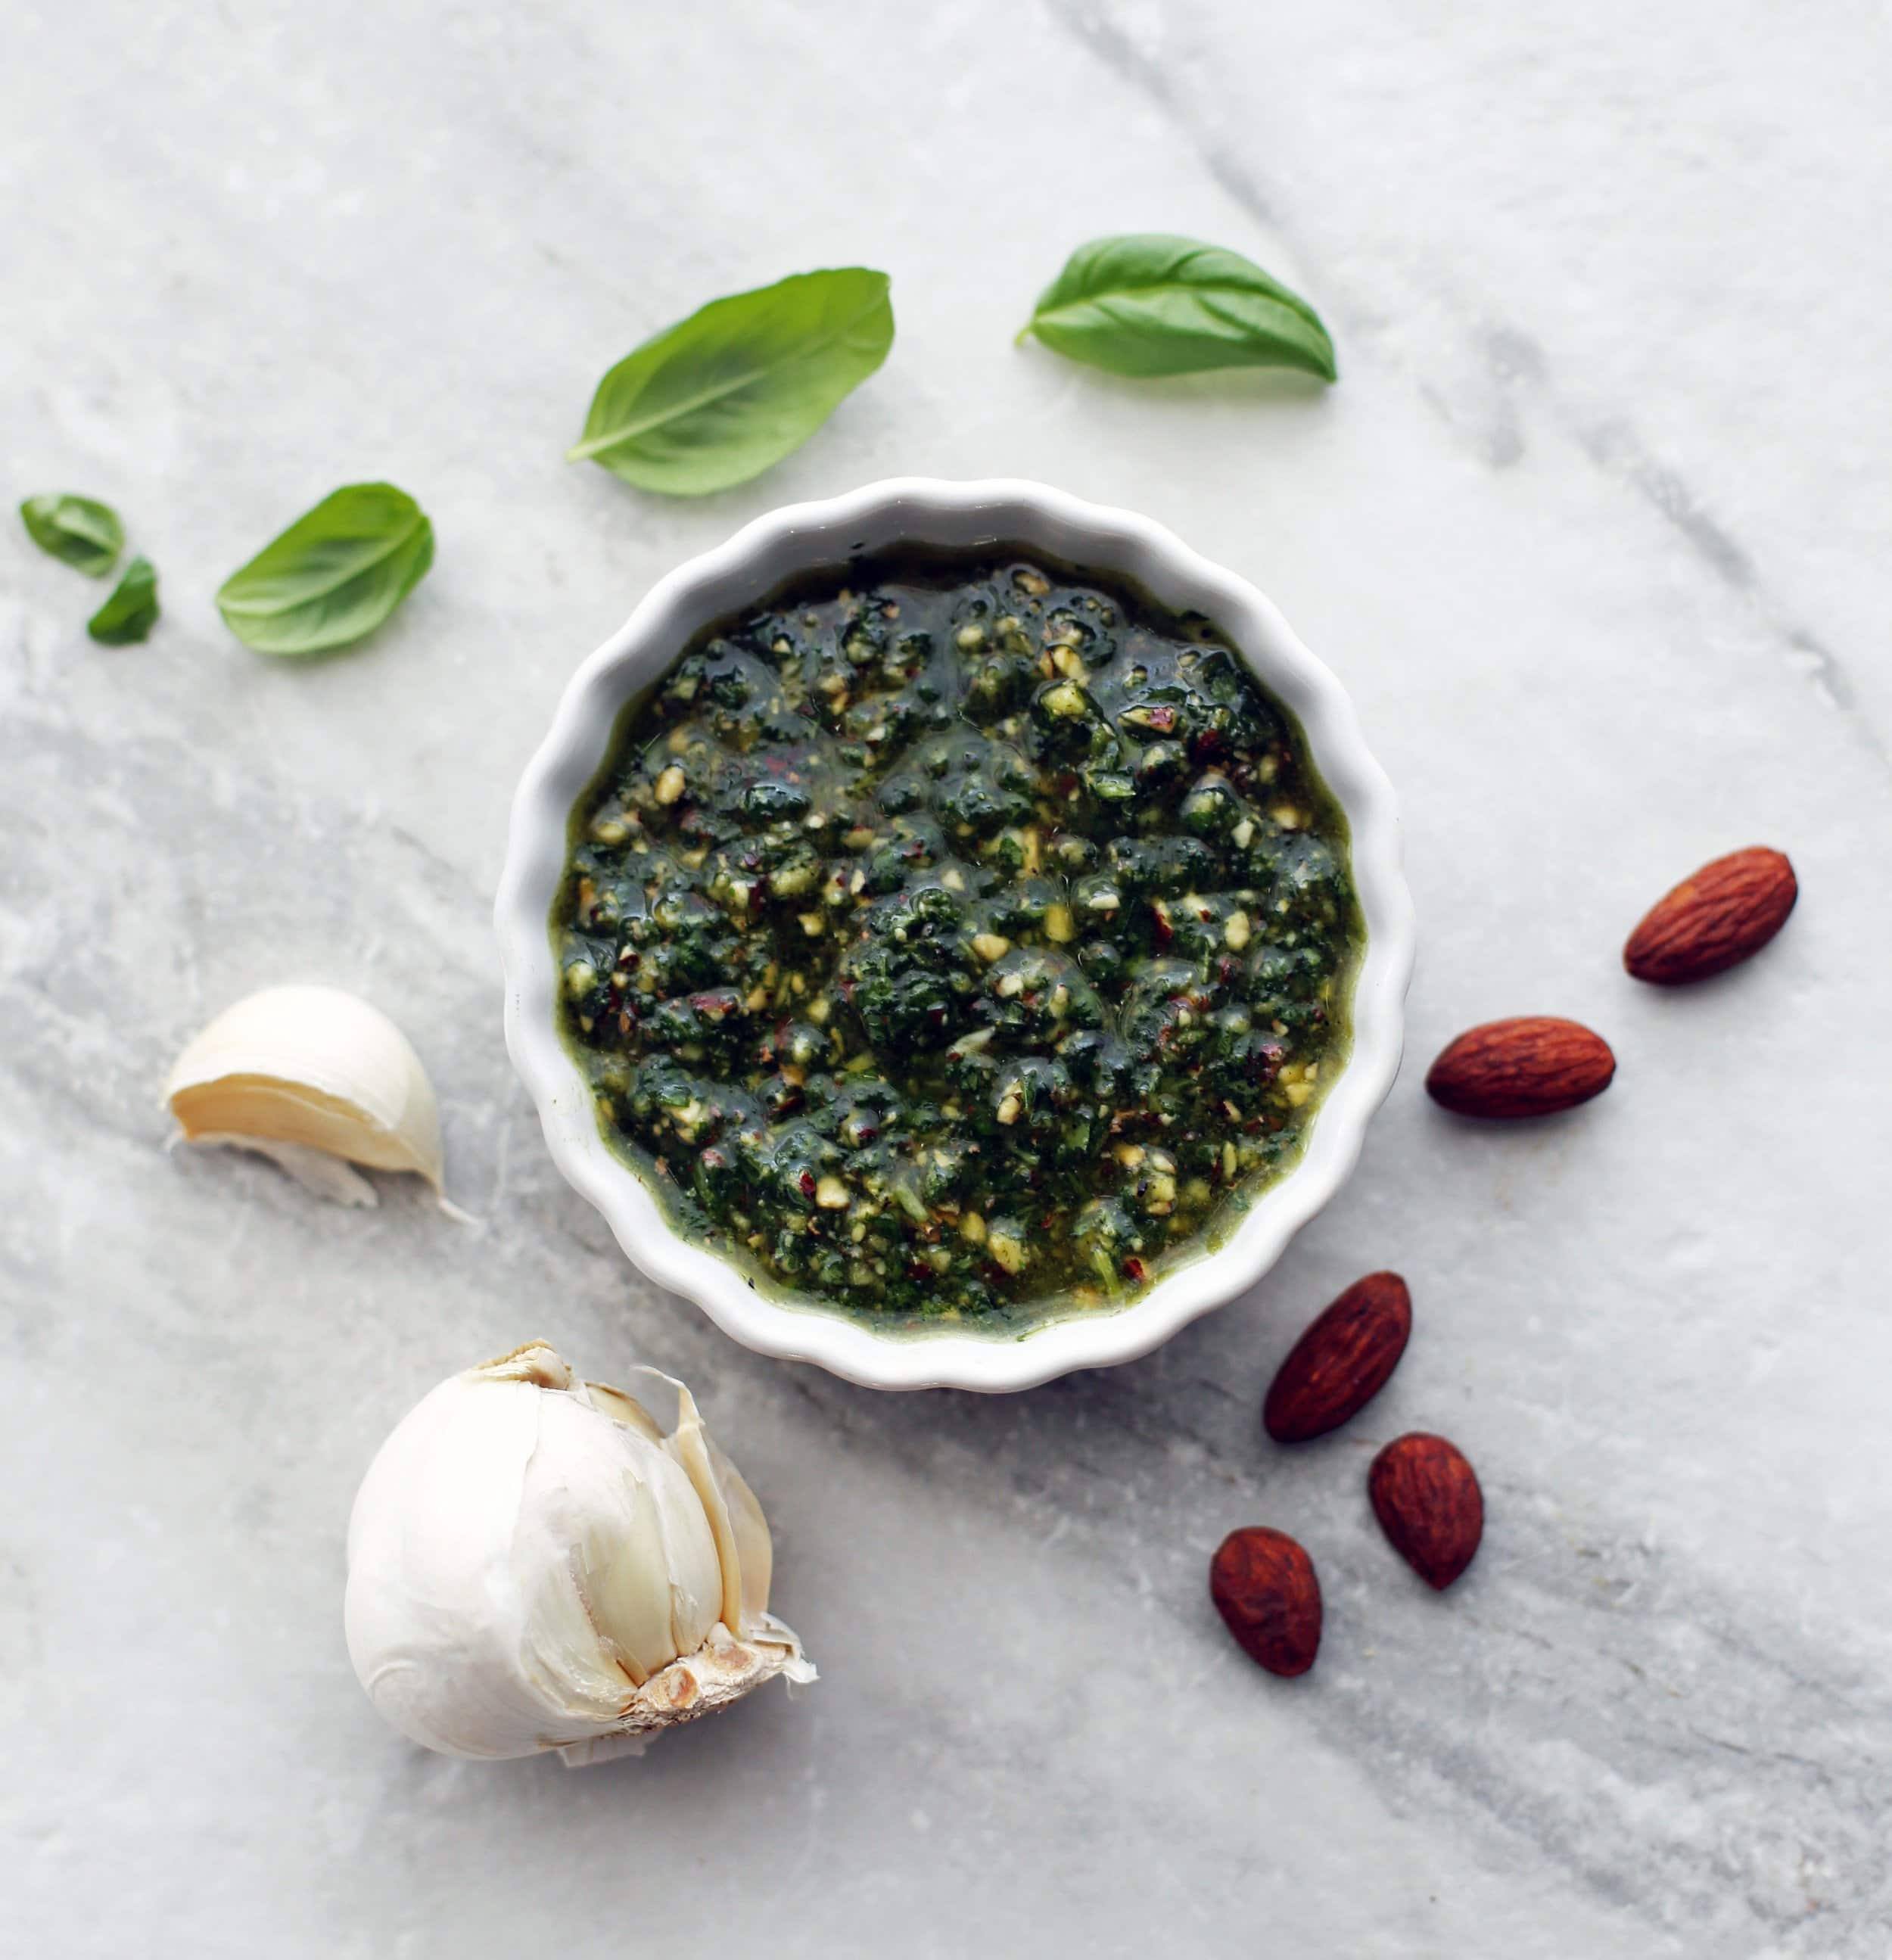 Dark green basil almond pesto in a small white bowl with basil leaves, almonds, and garlic around it.